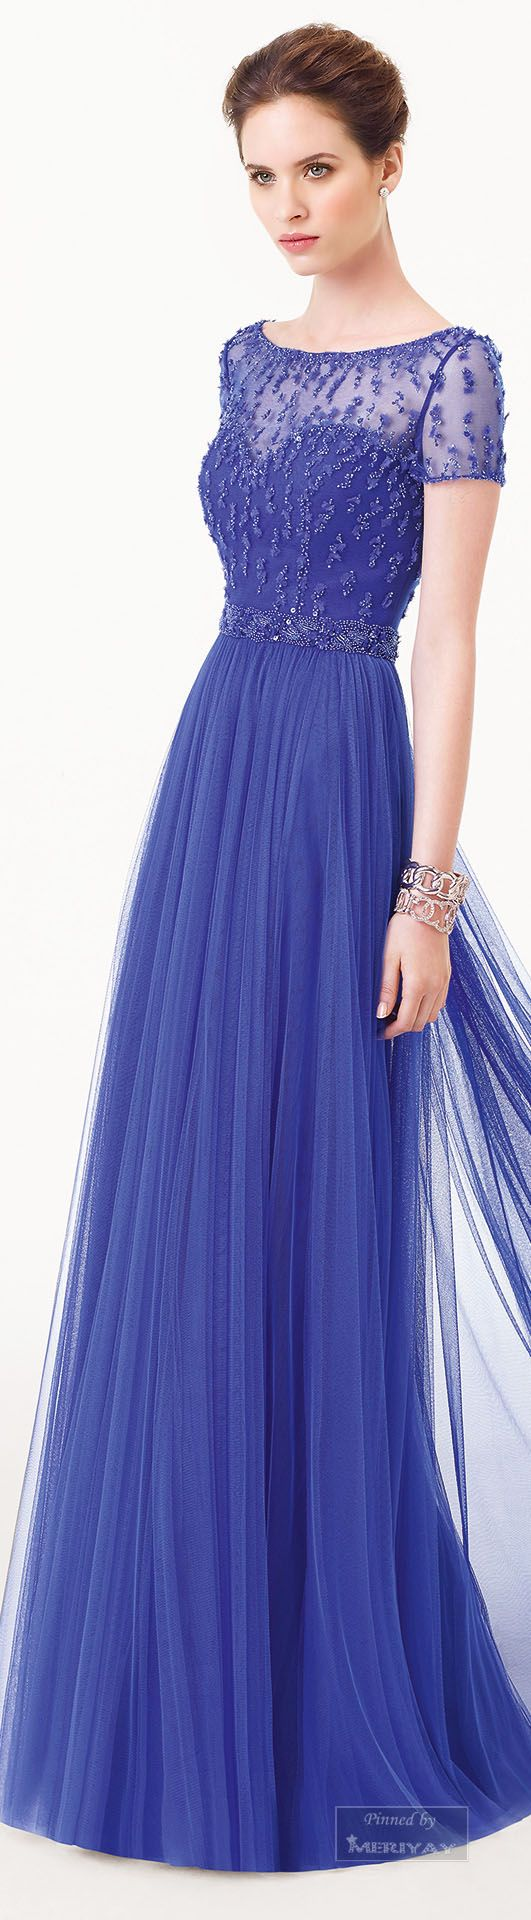 Aire Barcelona prom dresses 2015 http://www.wedding-dressuk.co.uk/prom-dresses-2015-uk63_1_80/p2